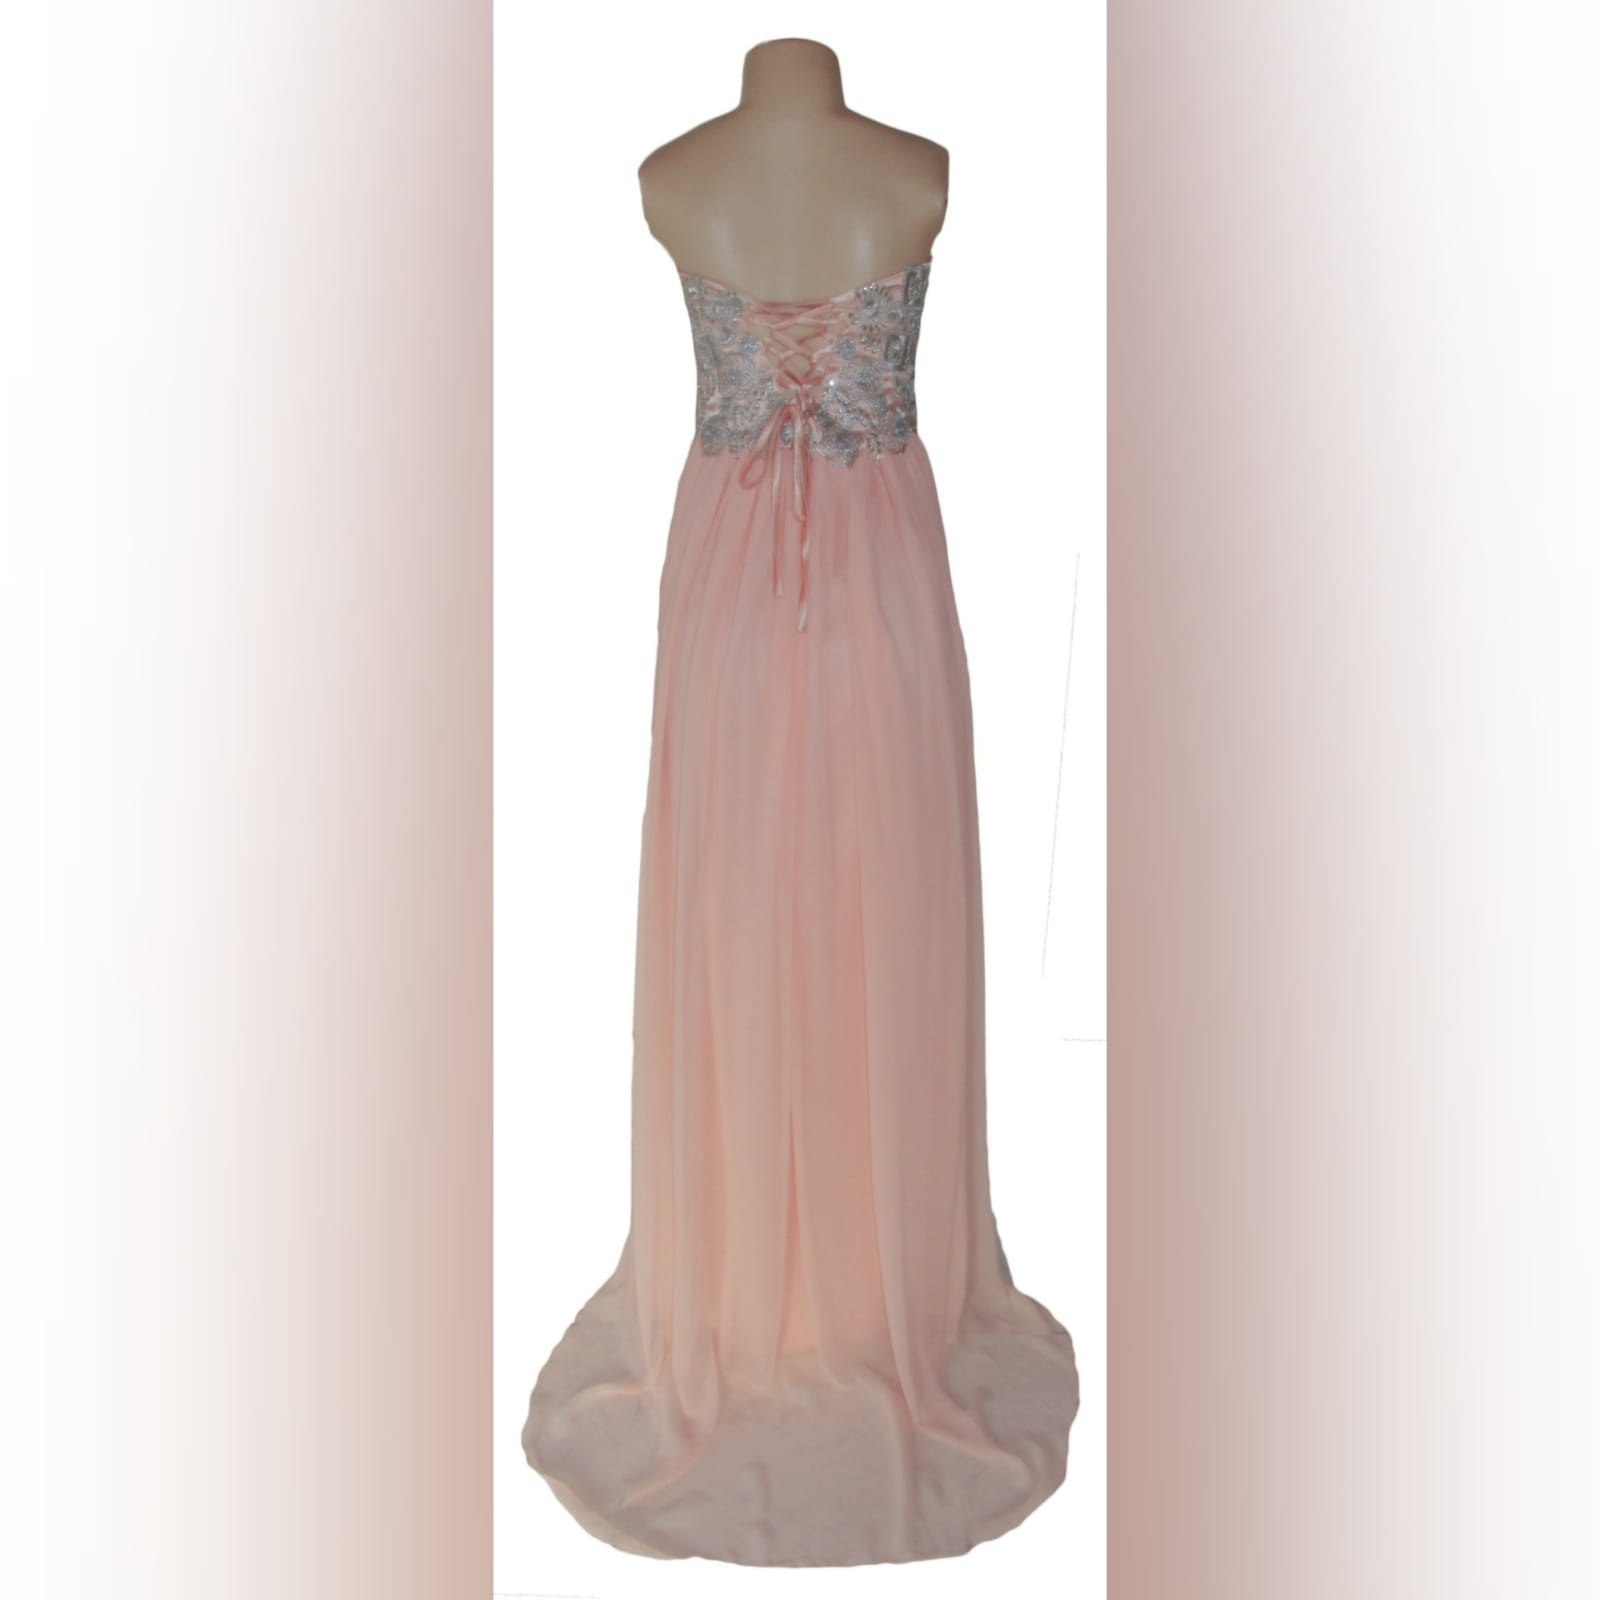 Peach and silver fun prom dress 7 peach and silver fun prom dress. Bodice detailed with appliques and beads, with a lace-up back. Bottom with gathered chiffon and an overlayer opened in front.